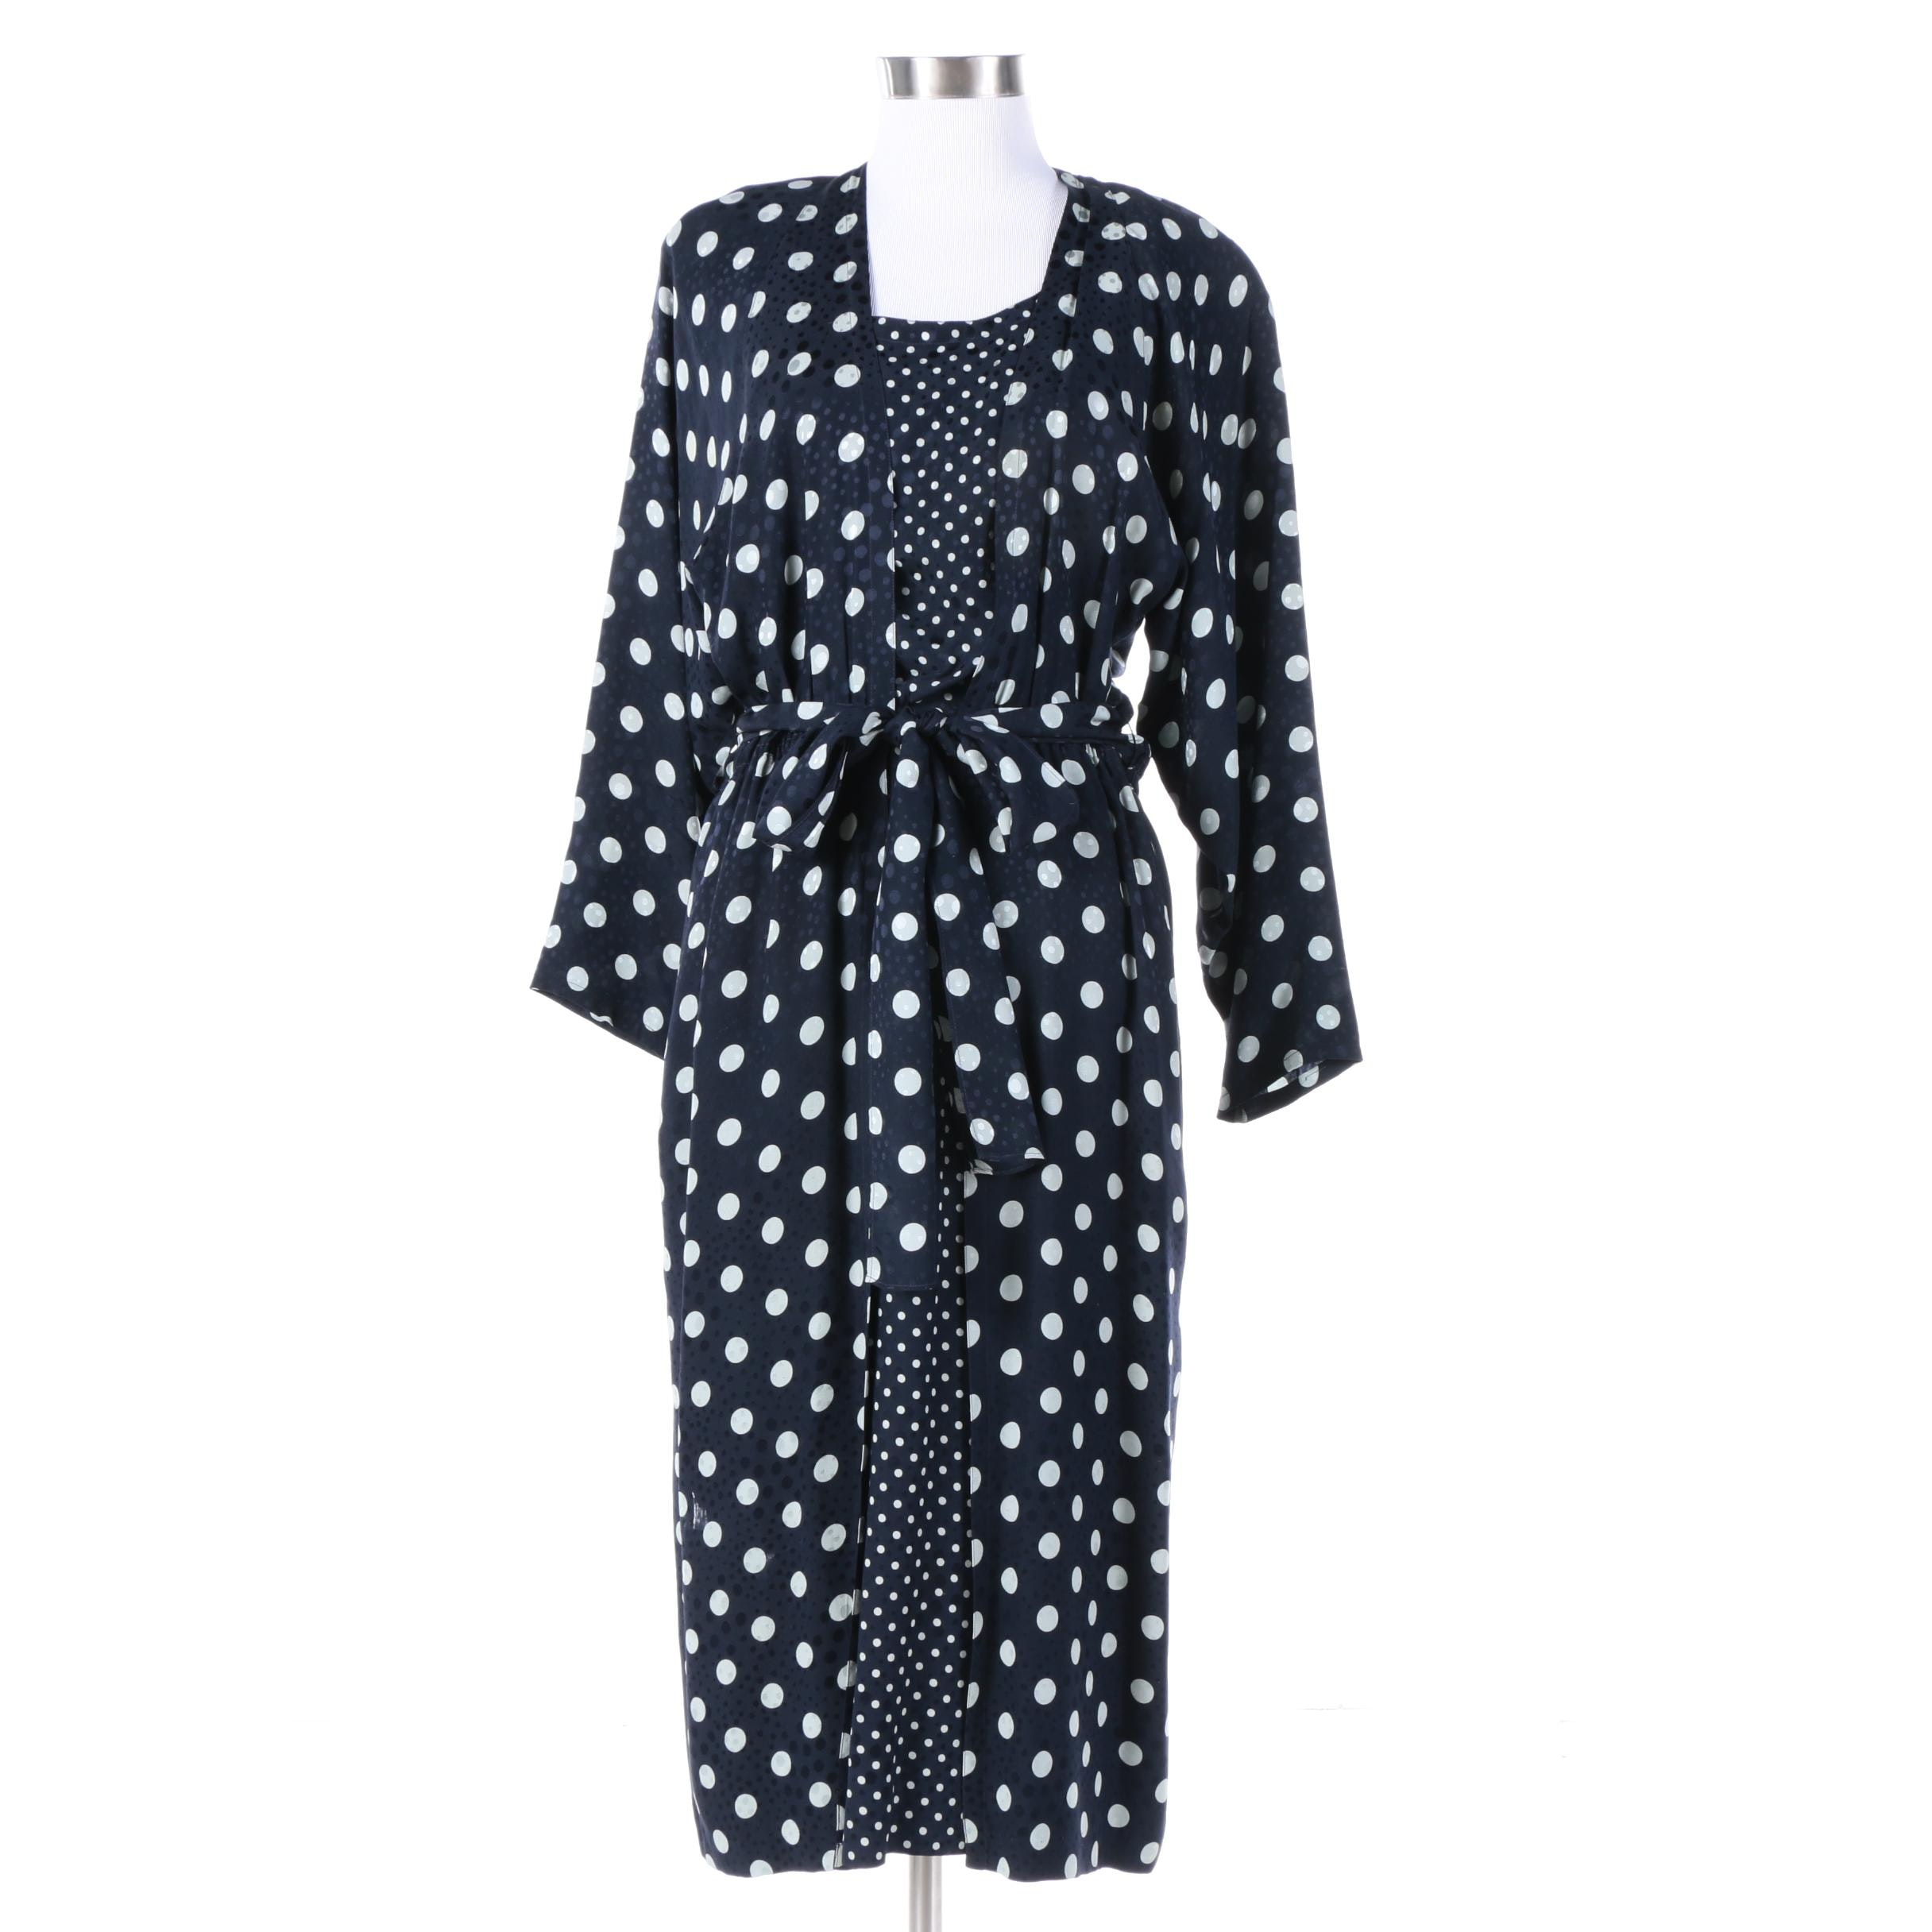 Louis Feraud Navy and White Polka Dot Silk Dress, Made in Germany